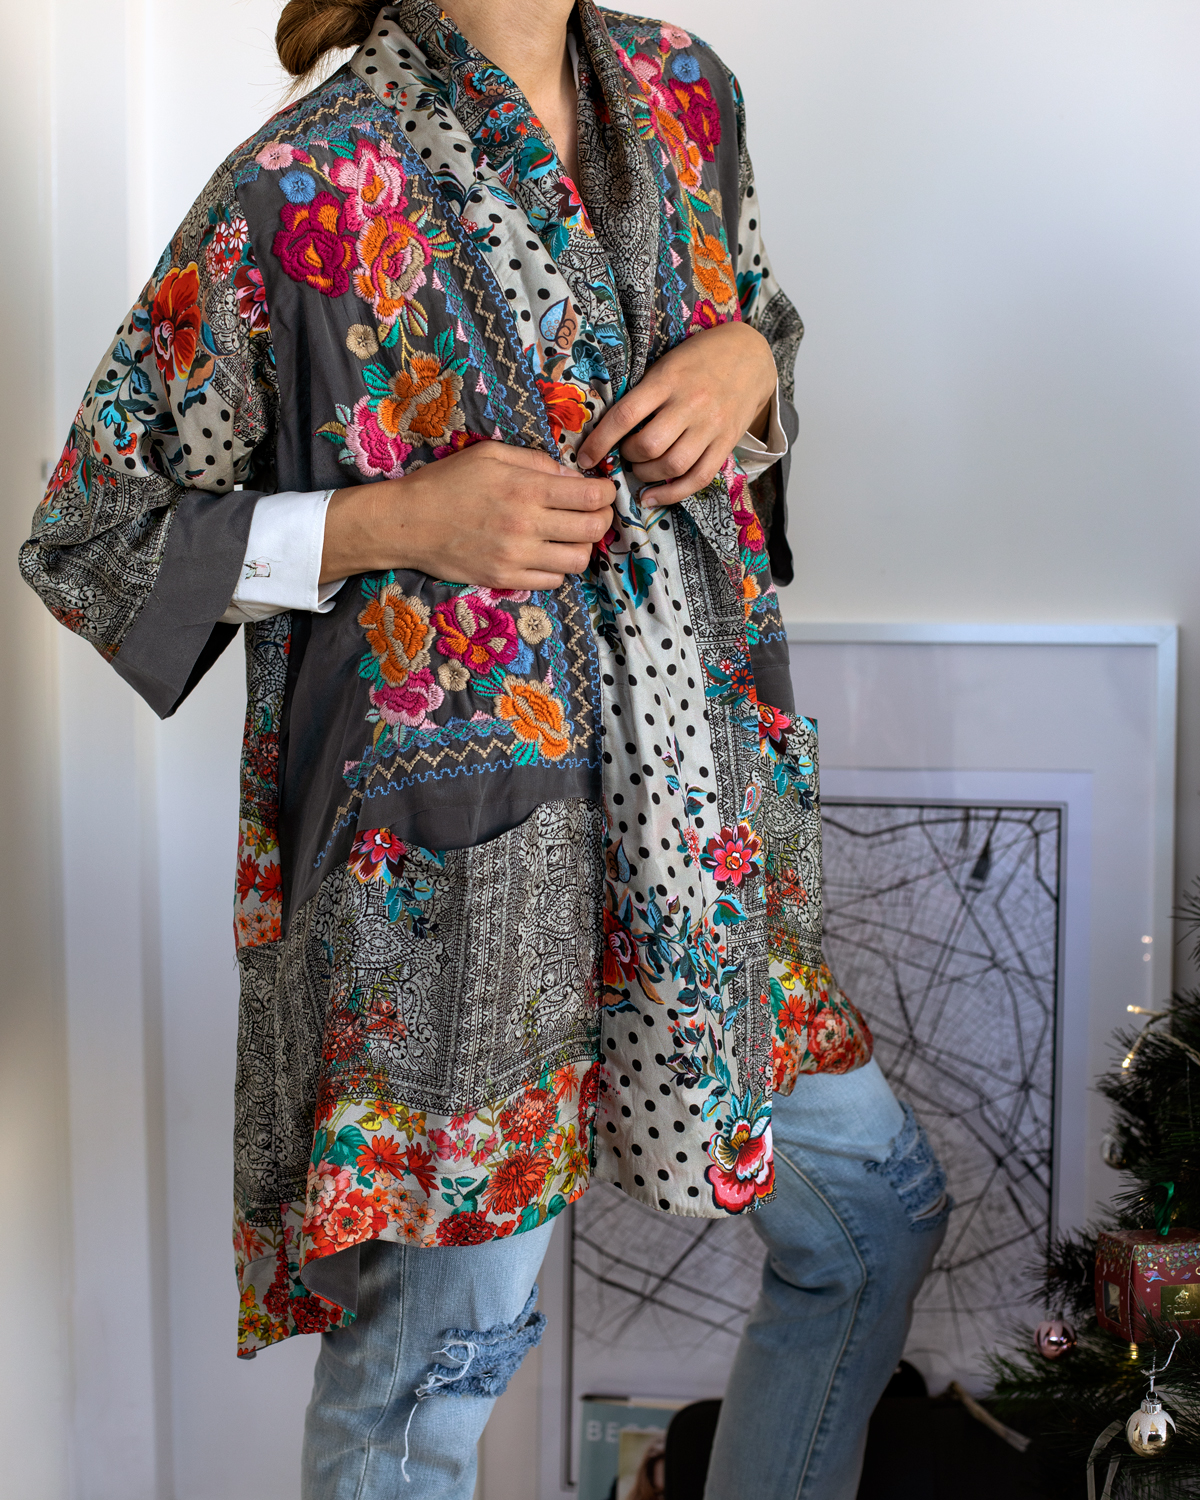 2018 Christmas gift guide Inspiring Wit blog featuring women's gift ideas Johnny Was embroidered silk robe